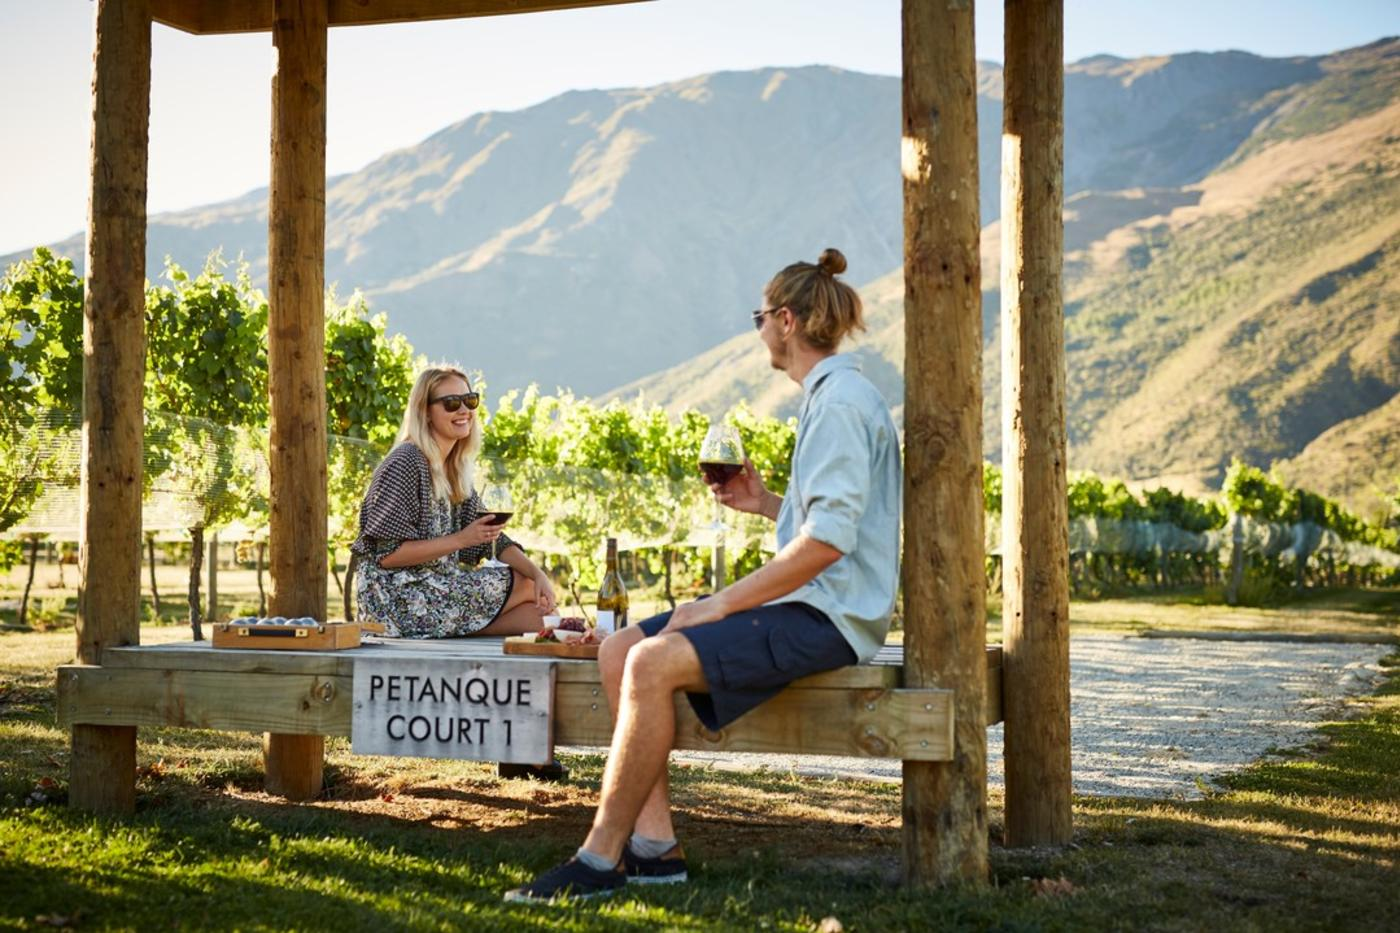 Kinross Wine Tasting shot by @pinotcentral